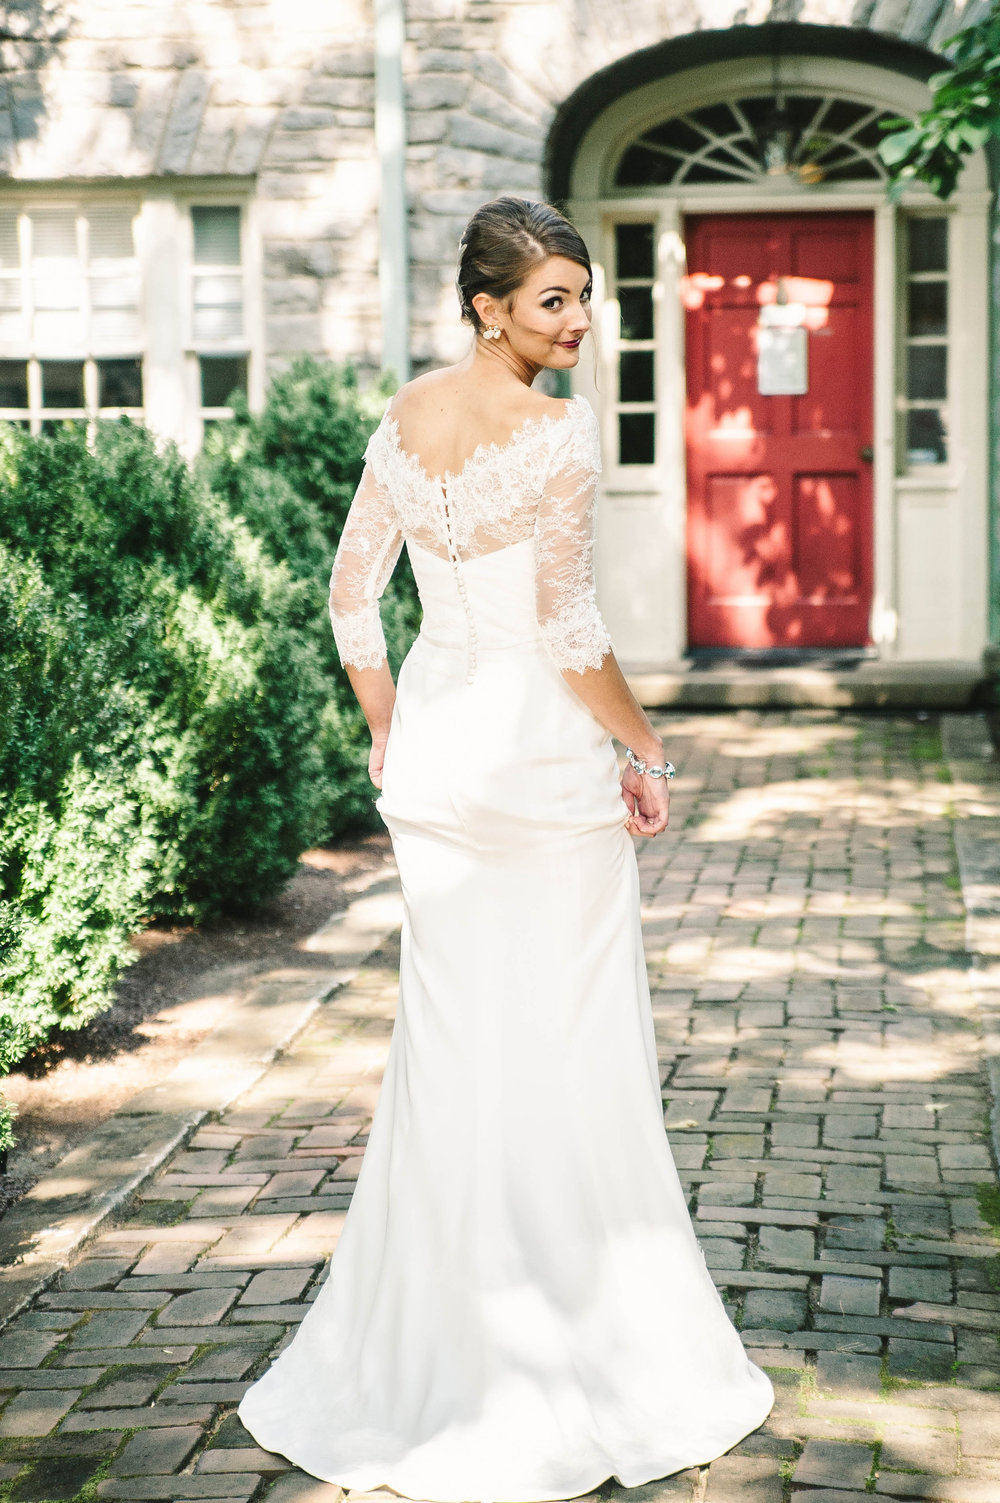 Cheekwood Art & Garden wedding, Nashville, TN